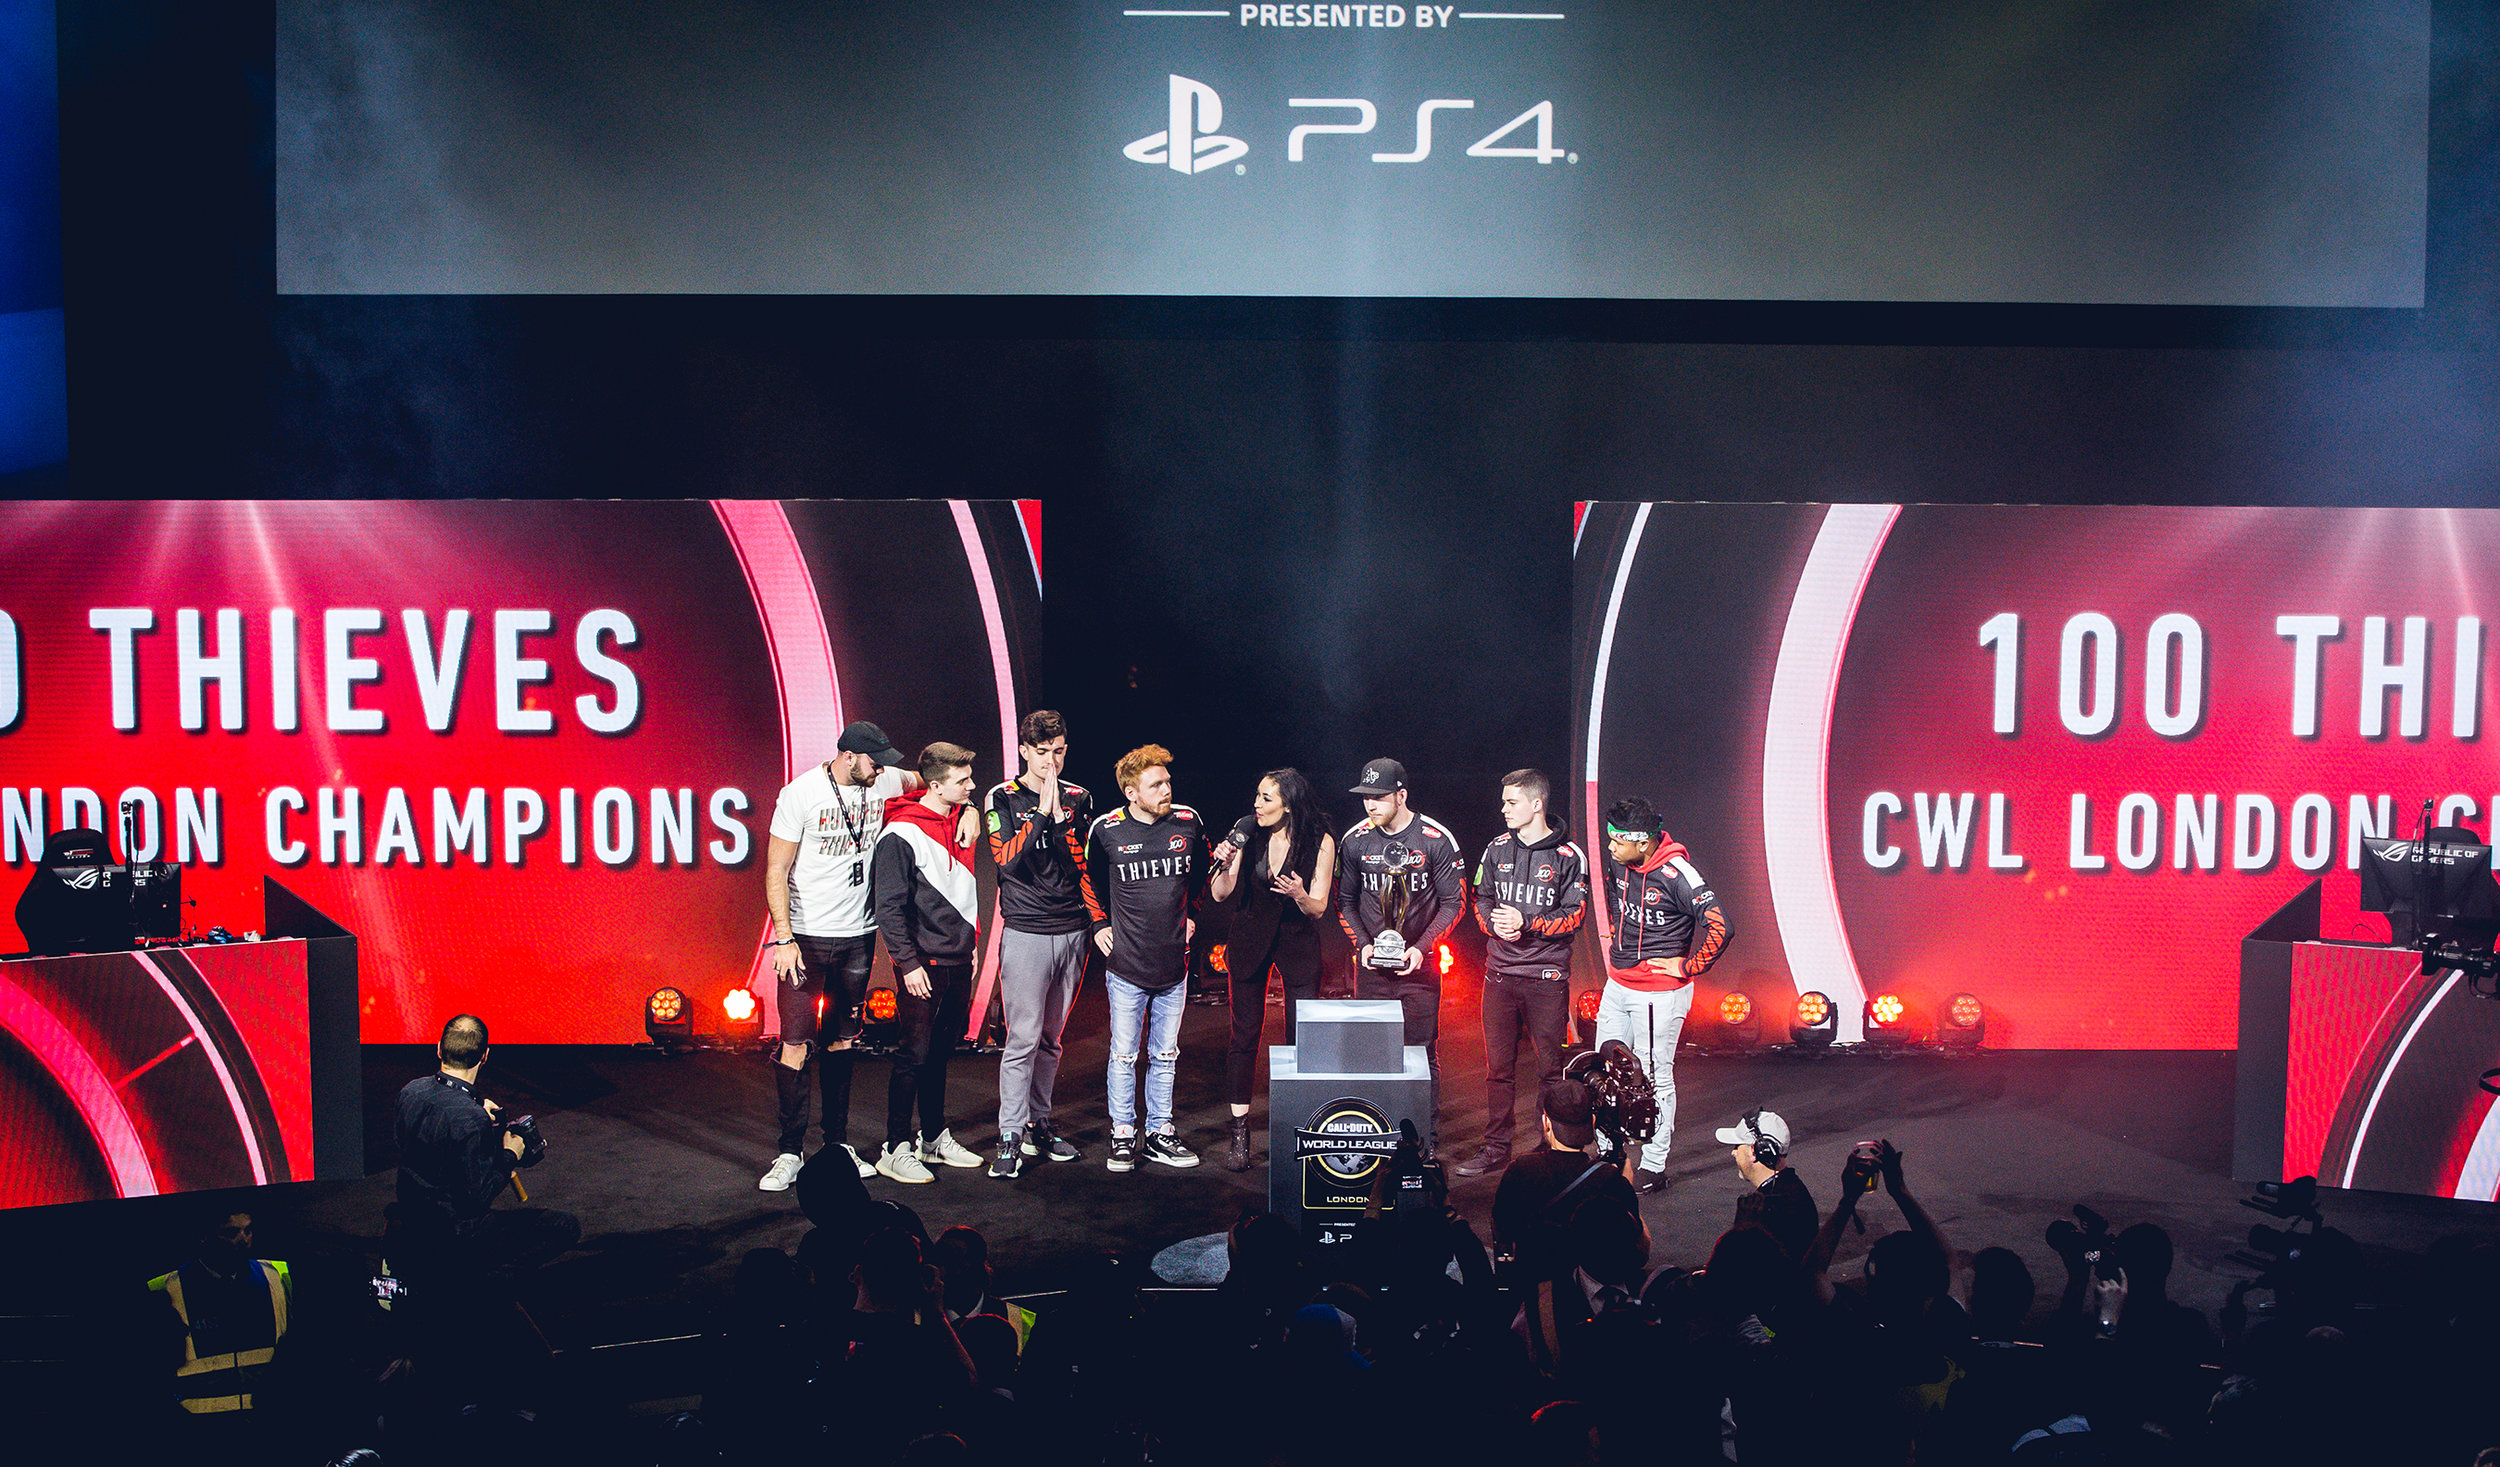 LONDON, ENGLAND - May 5, 2019: 100 Thieves onstage winning CWL trophy at Copper Box Arena on May 3, 2019 in London, England. (Photo by Joao Ferreira/ESPAT Media)